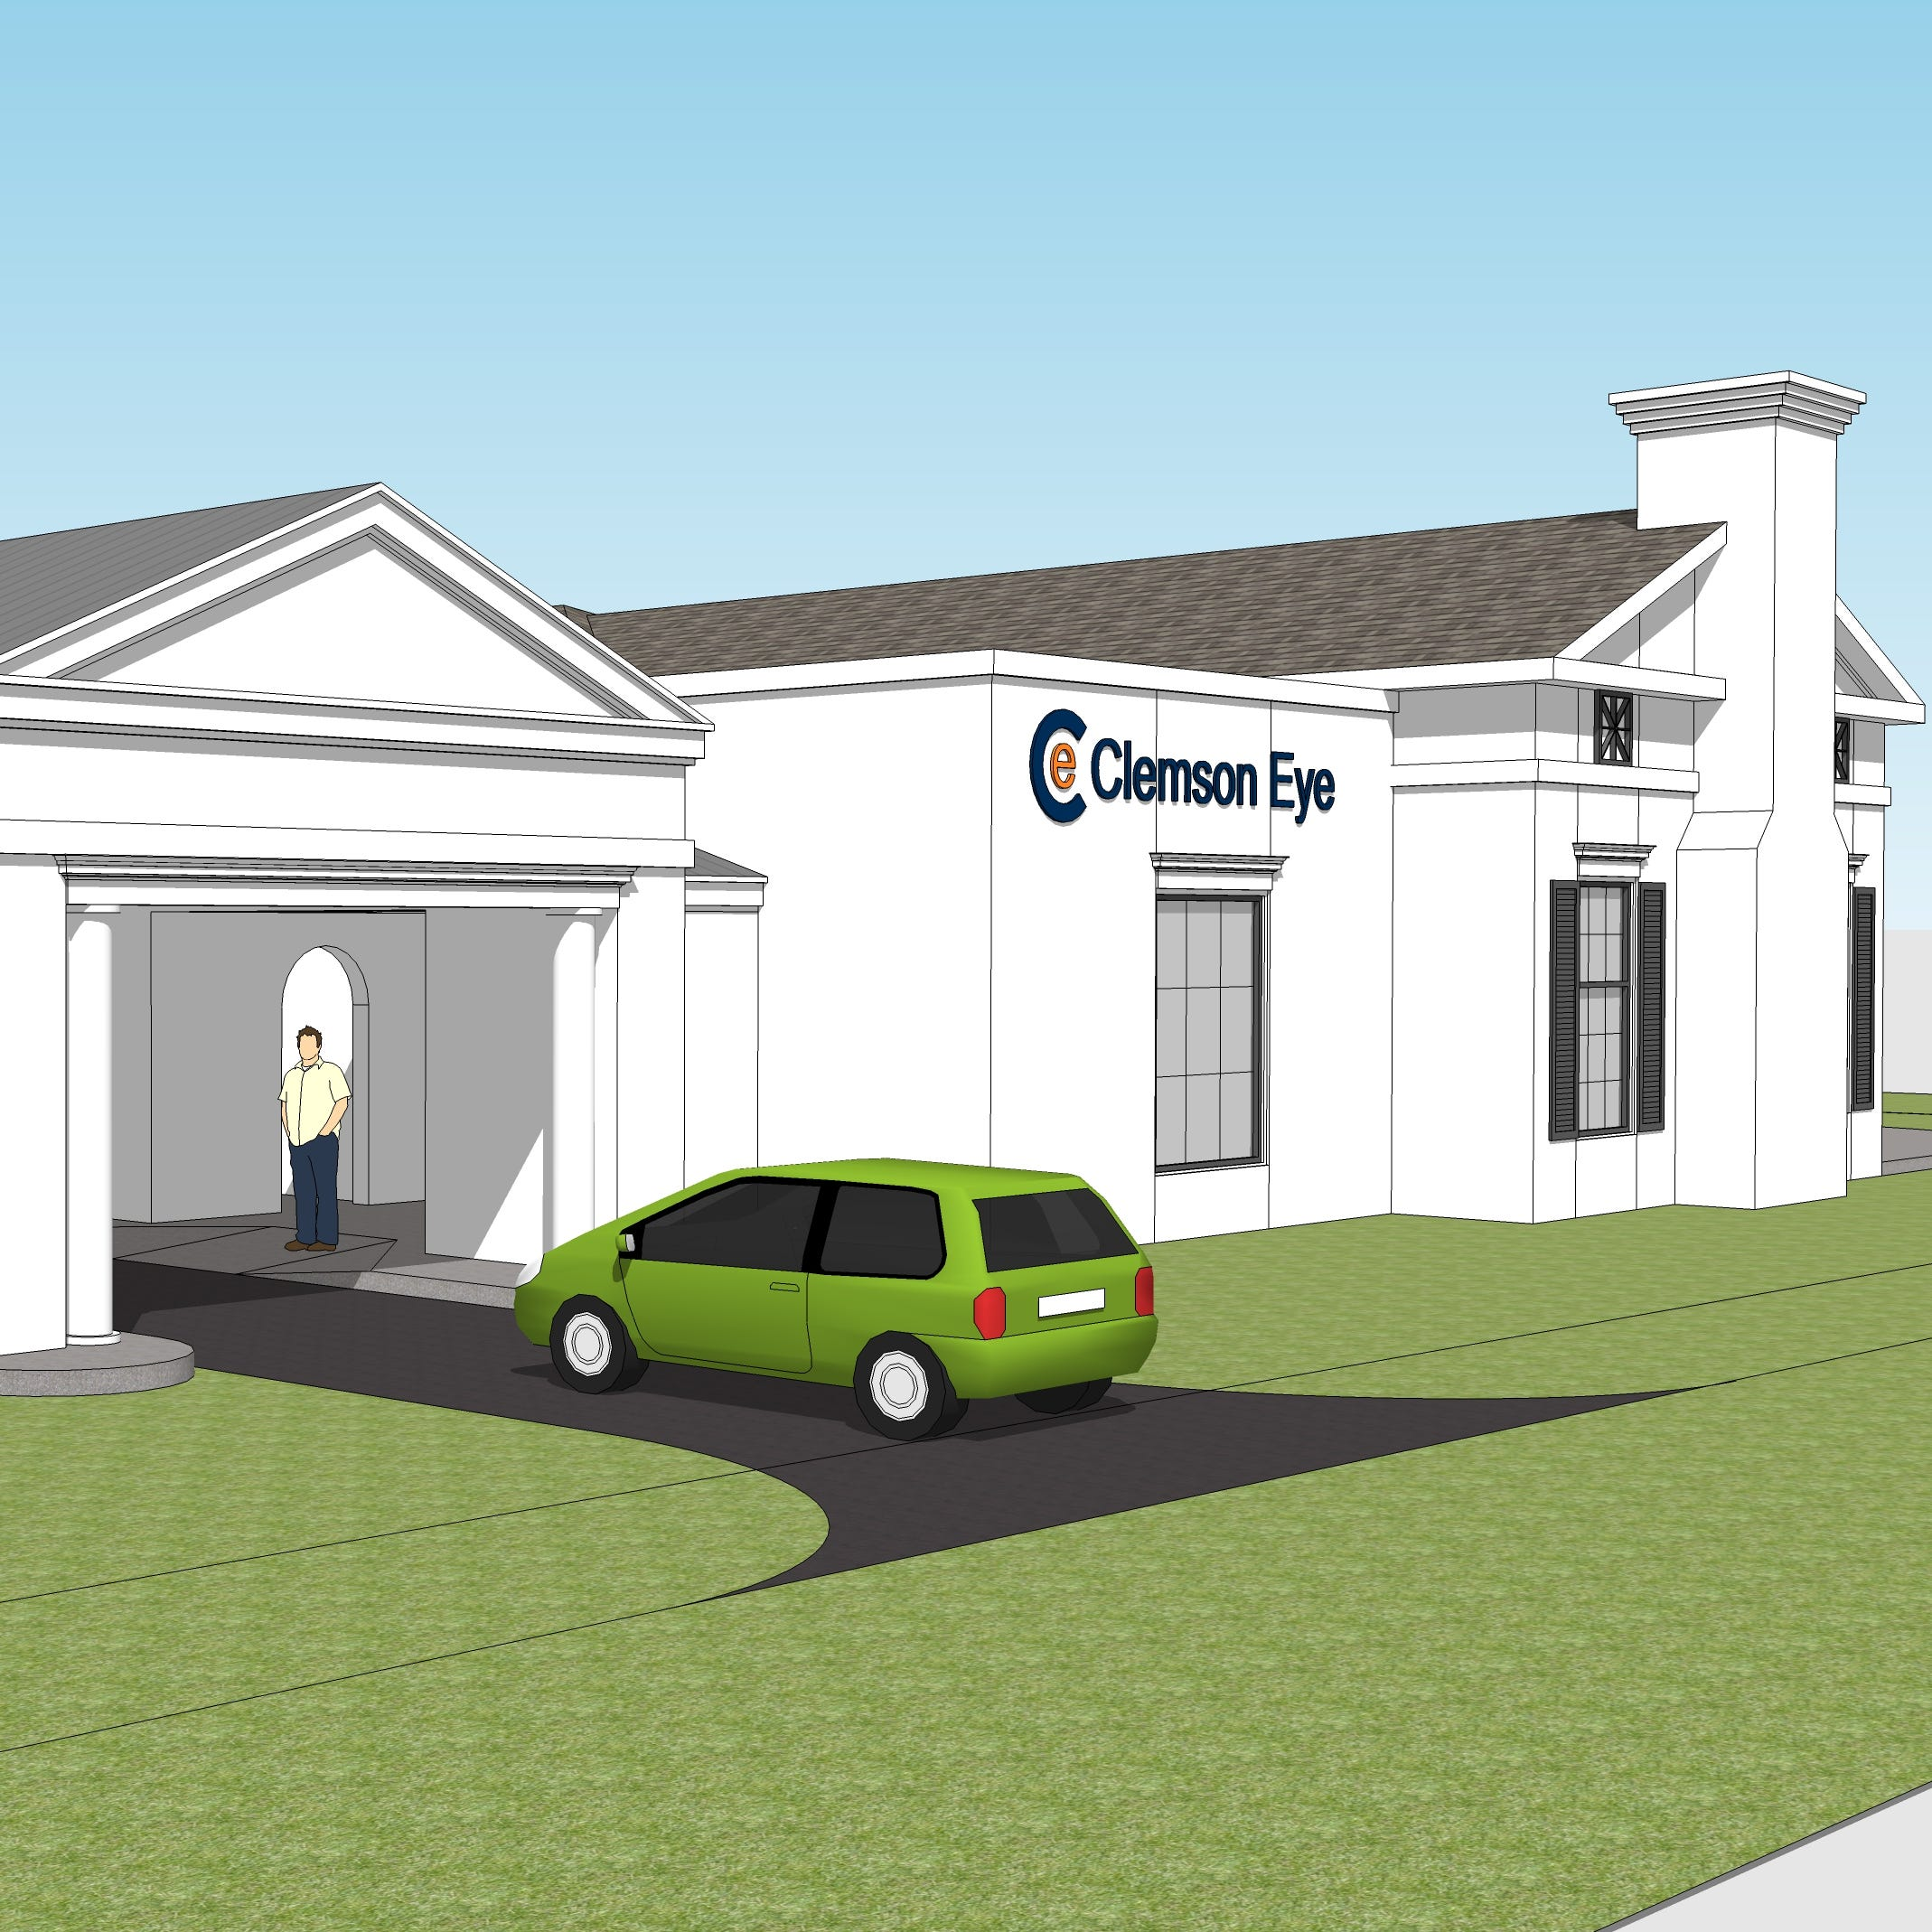 5 new business developments on the way in Simpsonville